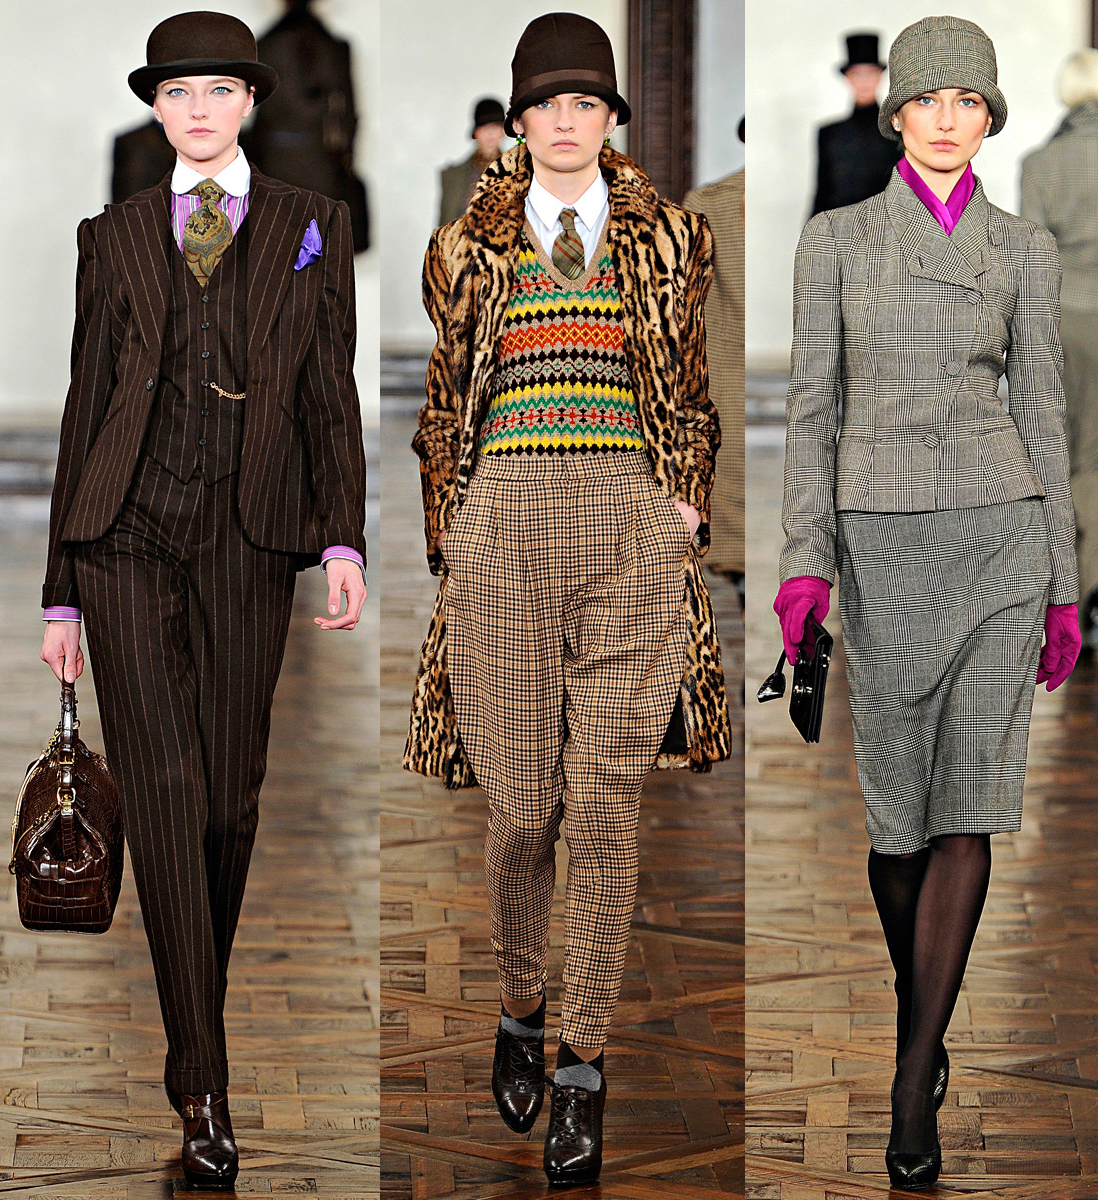 New York Fashion Week FW12: Ralph Lauren, Oscar de la Renta